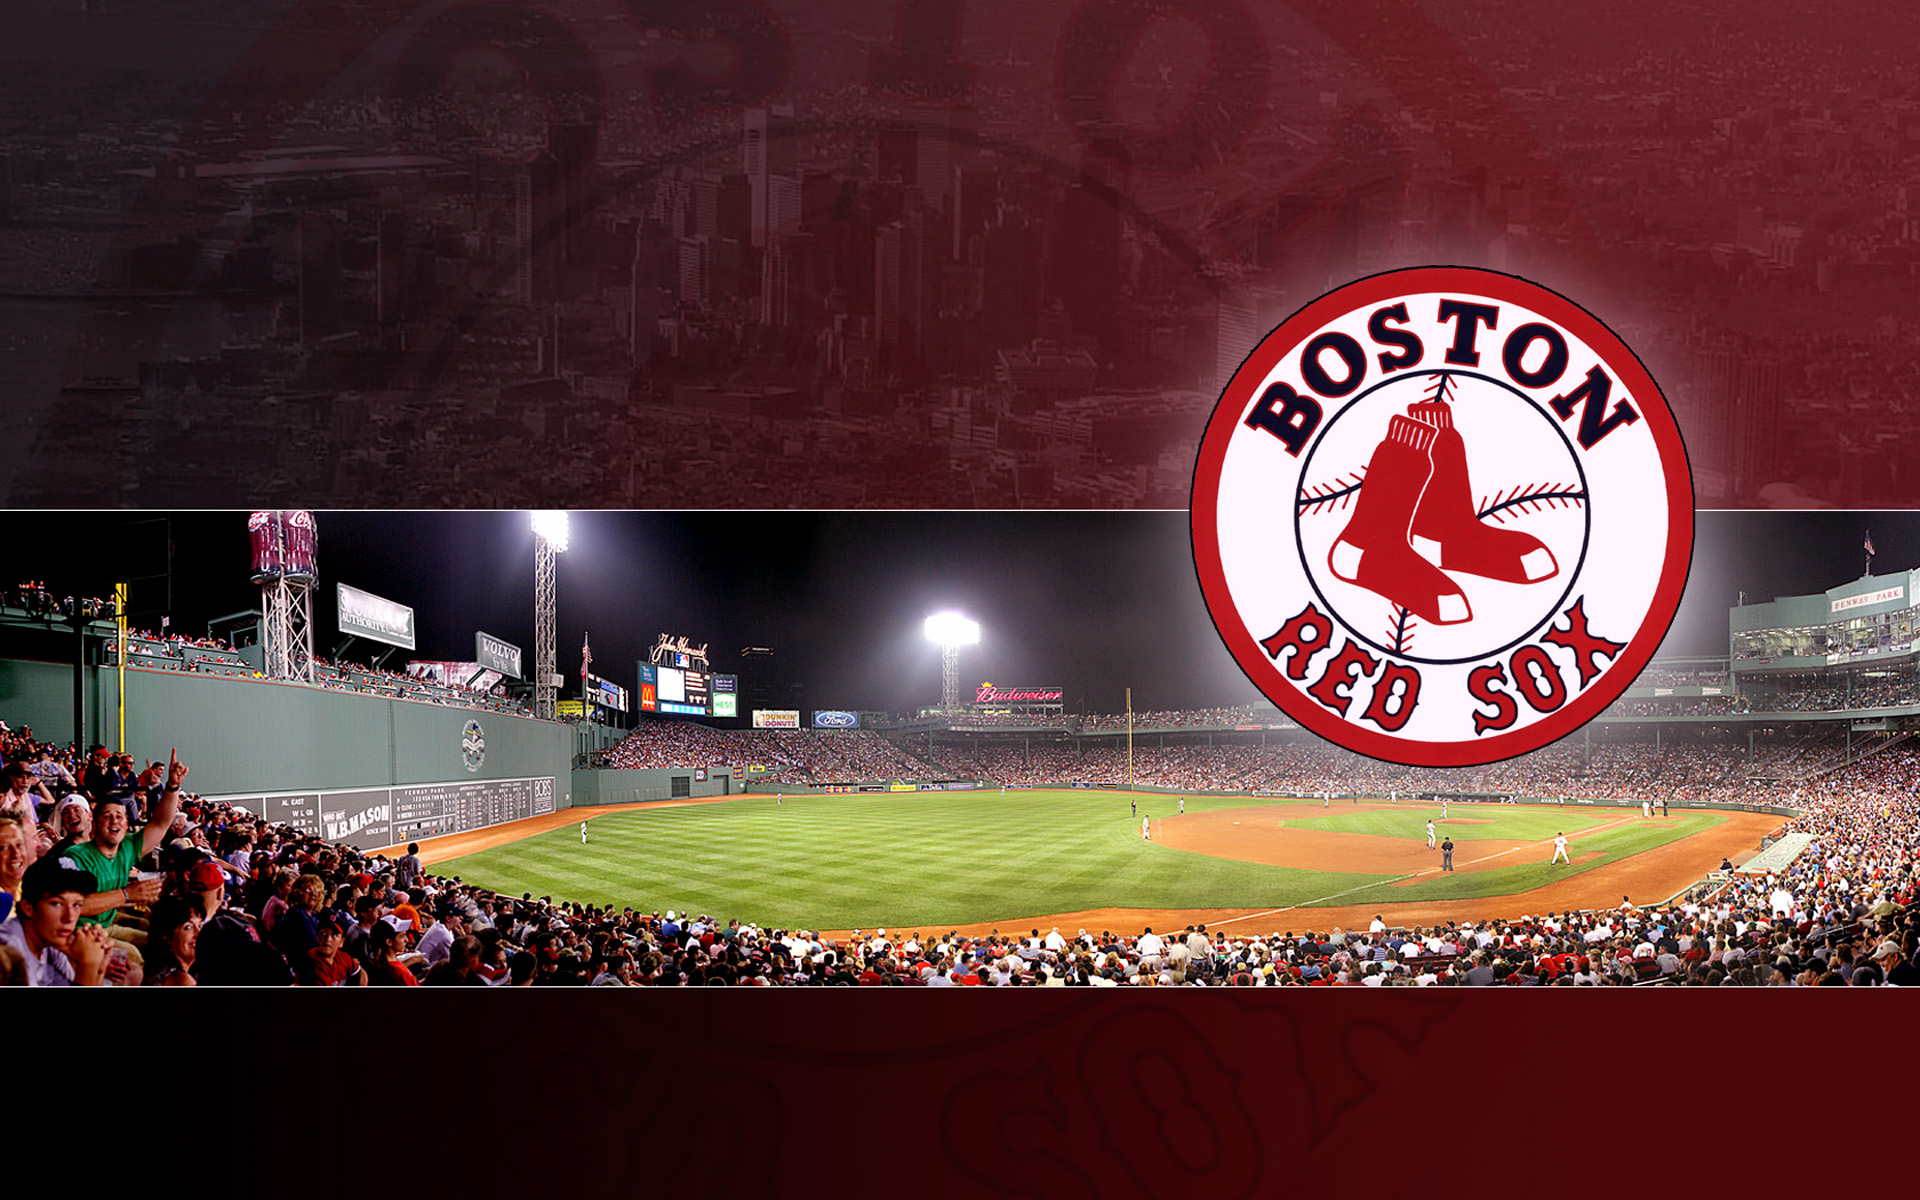 Boston Red Sox Backgrounds Free Download | PixelsTalk Net